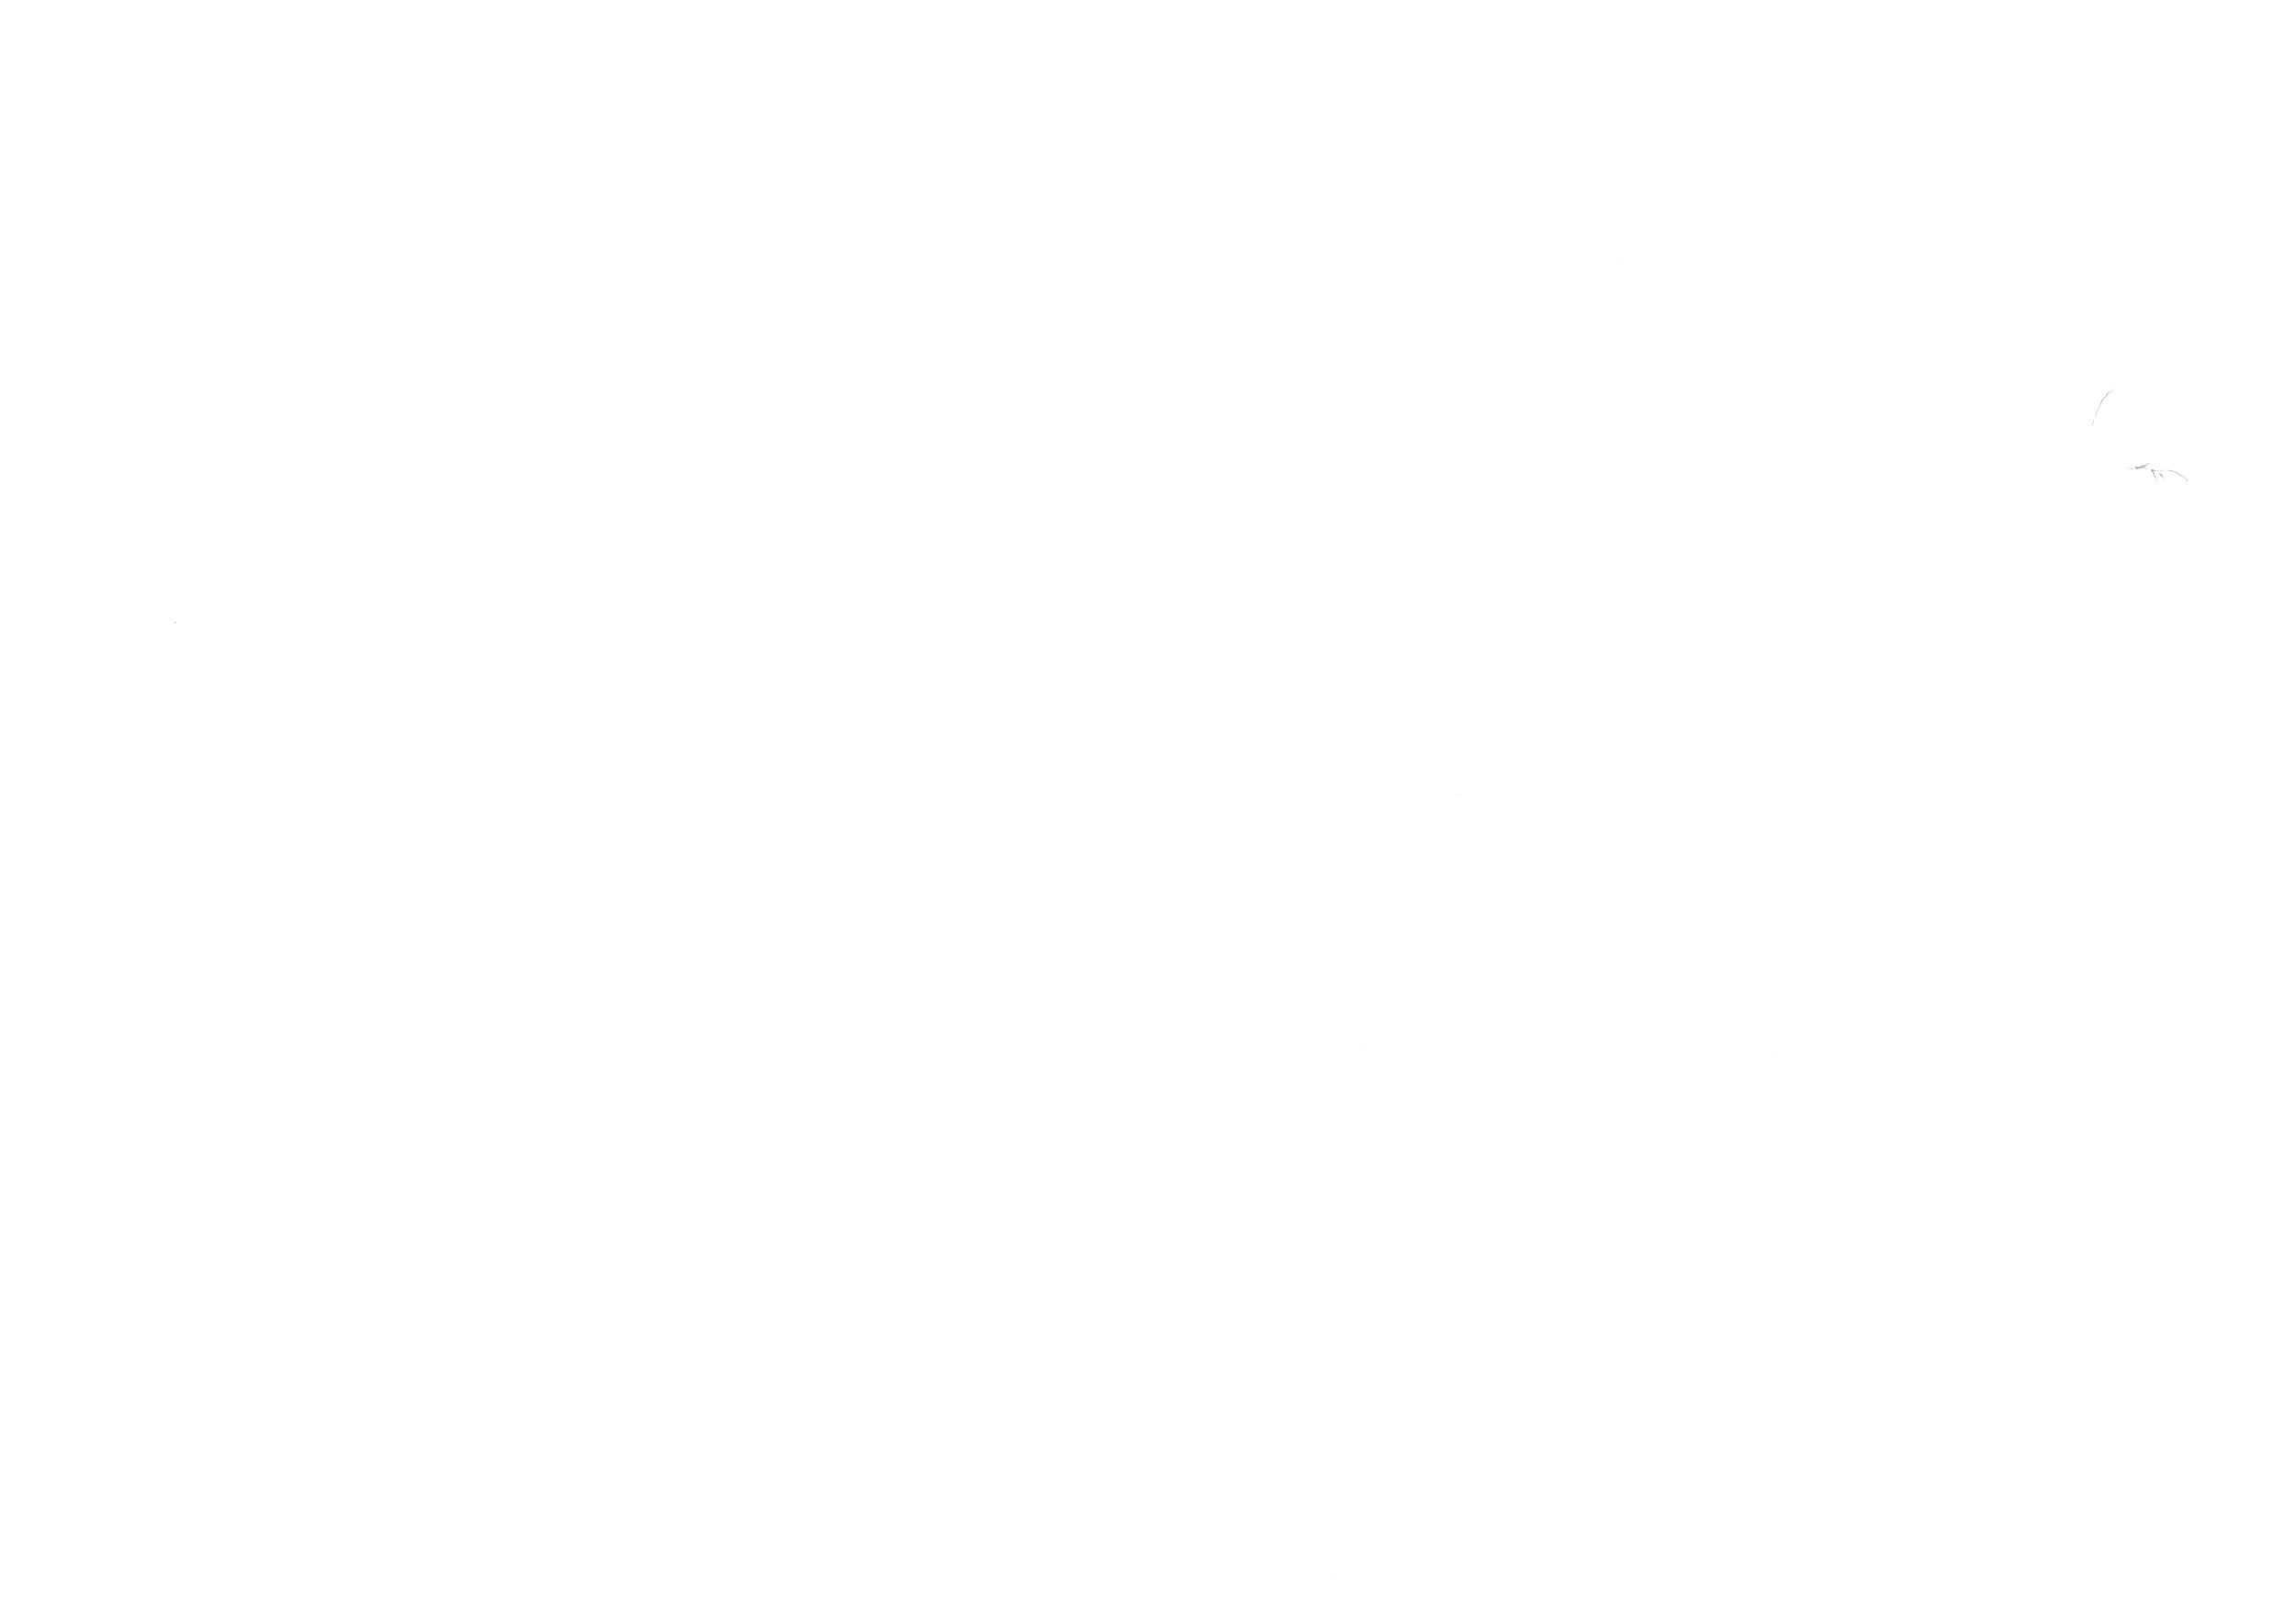 flower scan2 50 percent.png